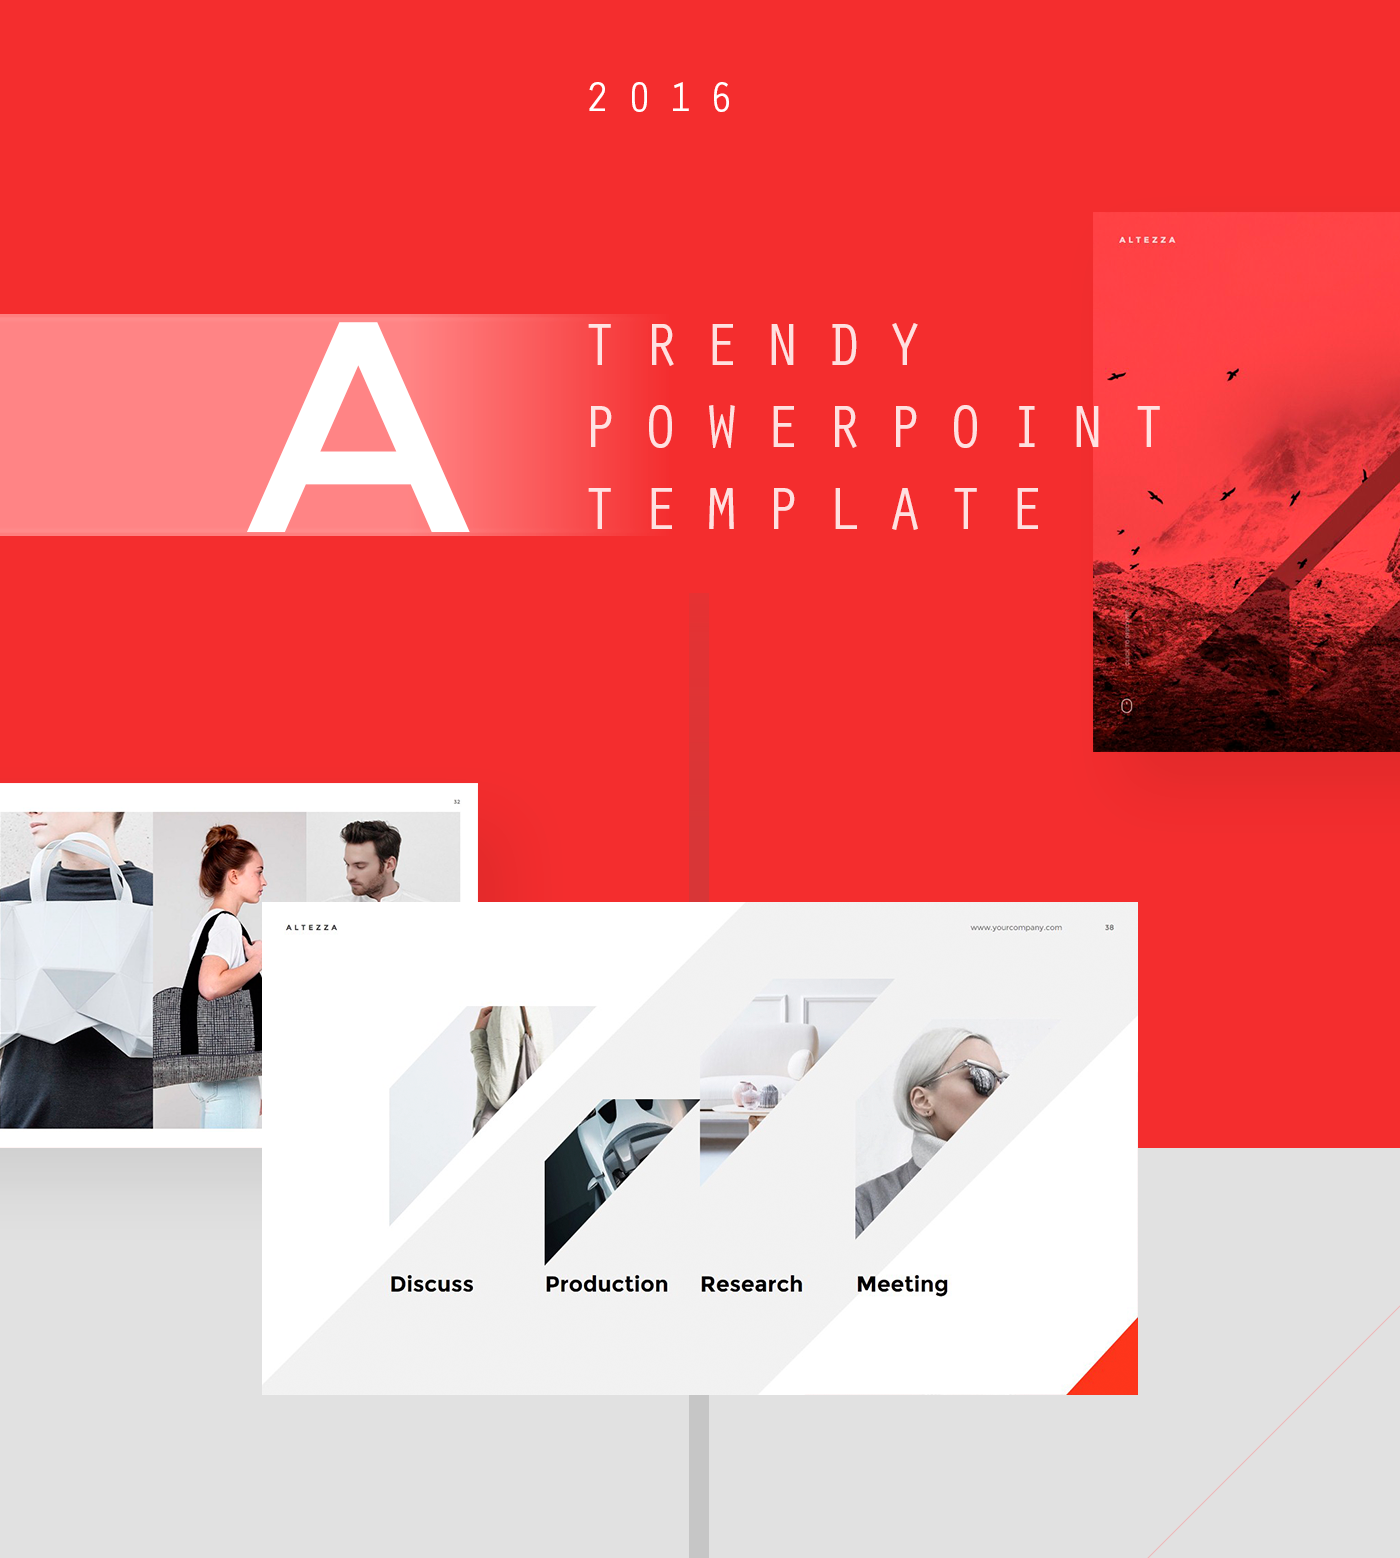 Check out this behance project altezza powerpoint template https check out this behance project altezza powerpoint template https toneelgroepblik Choice Image